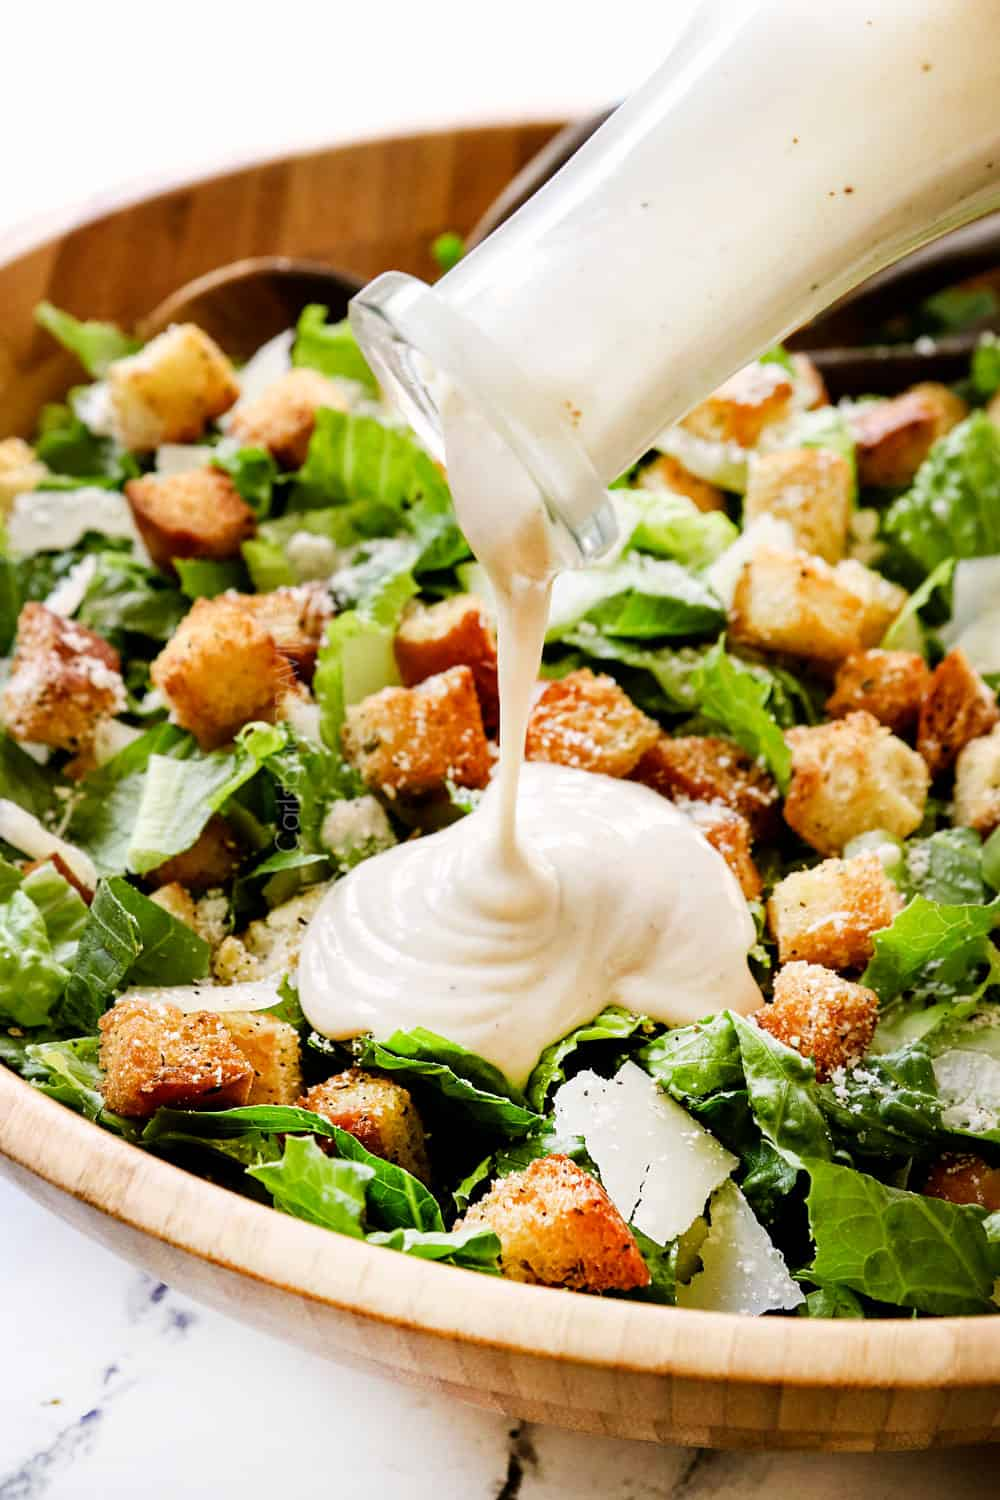 showing how to make Caesar Salad recipe by drizzling salad with Caesar Dressing